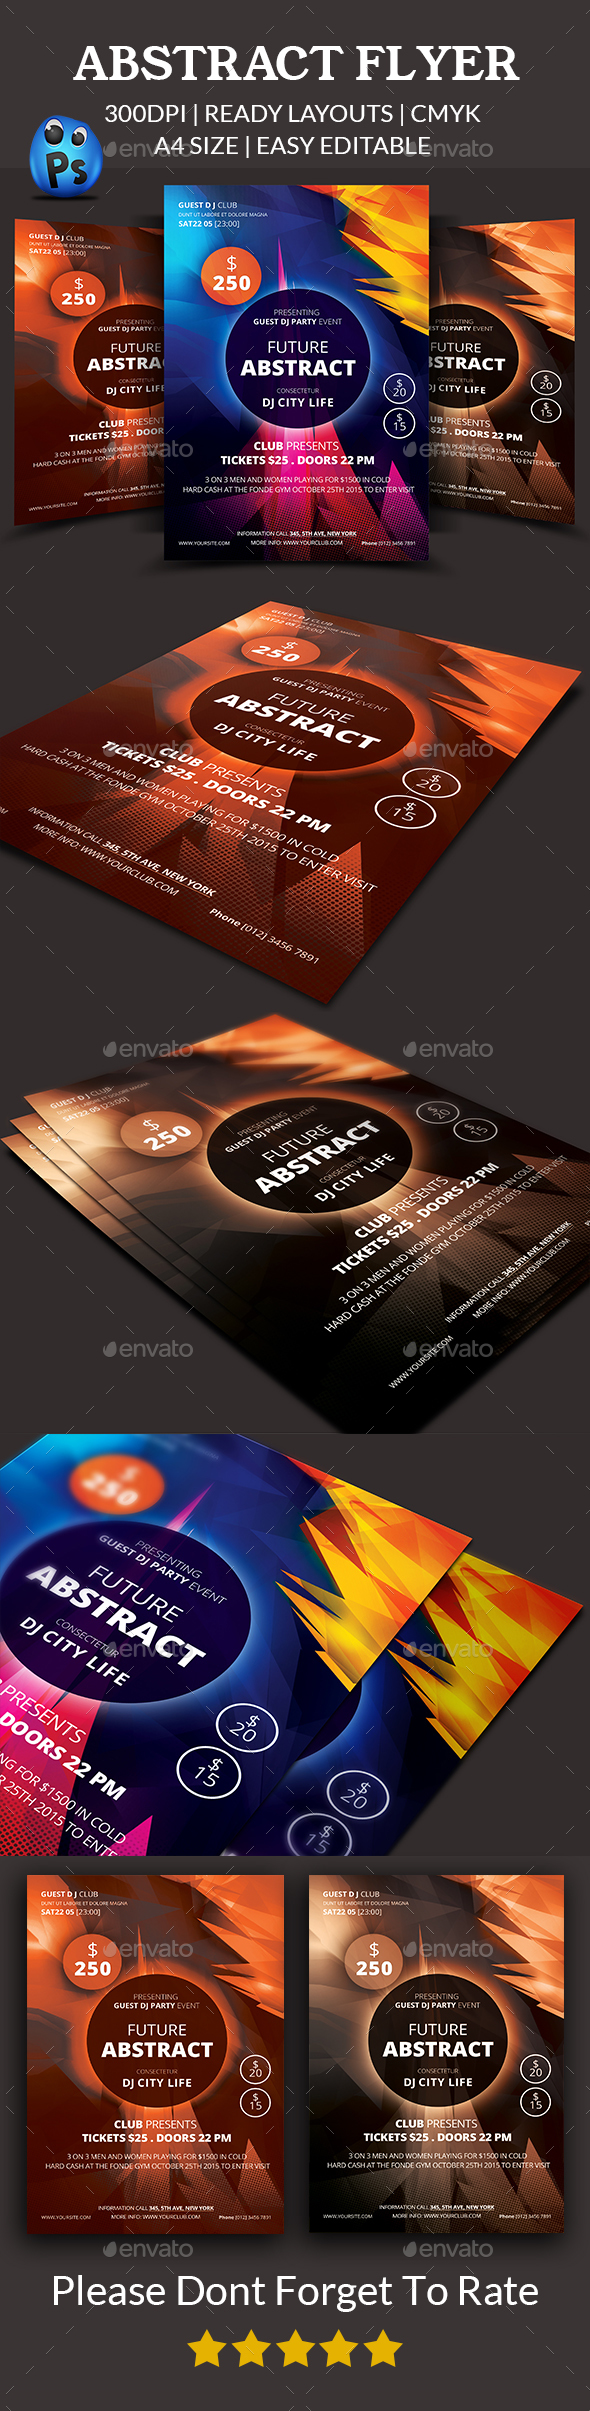 Abstract Flyer Templates - Clubs & Parties Events